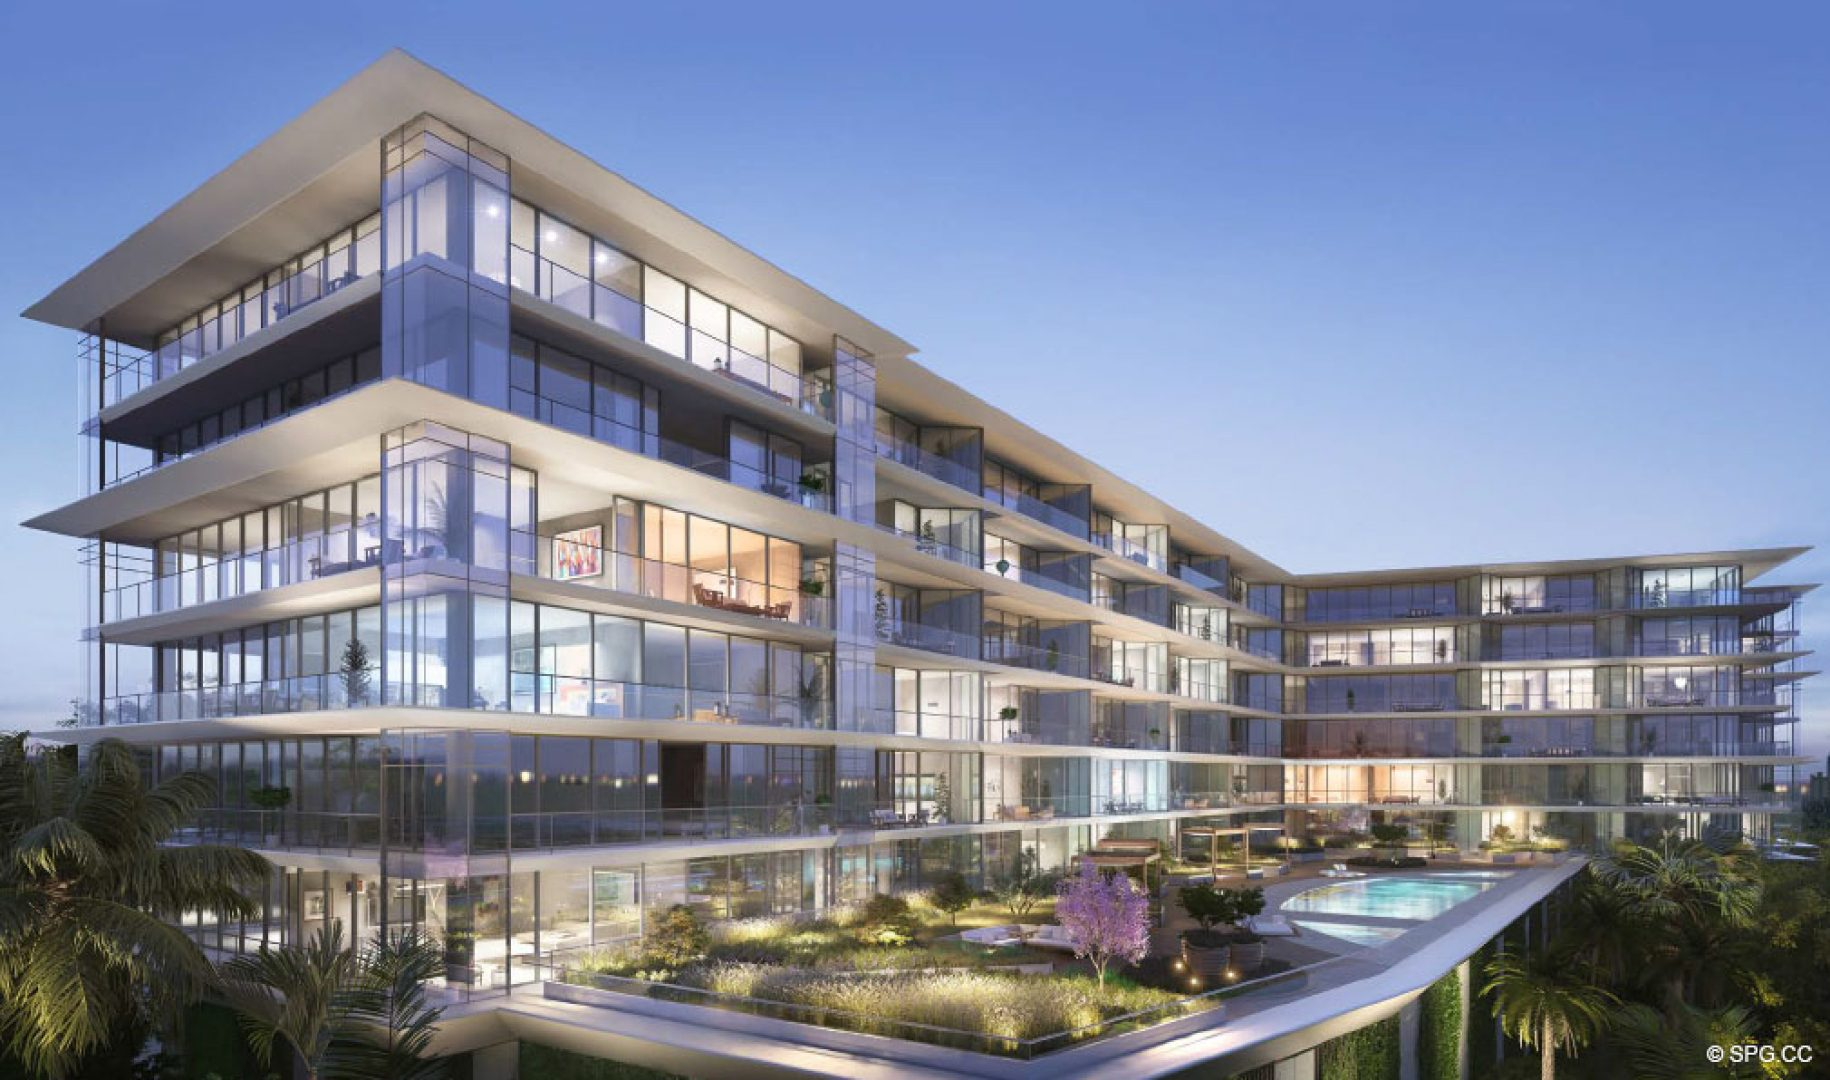 Spend Your Evenings at 3900 Alton, Luxury Waterfront Condos in Miami Beach, Florida 33140